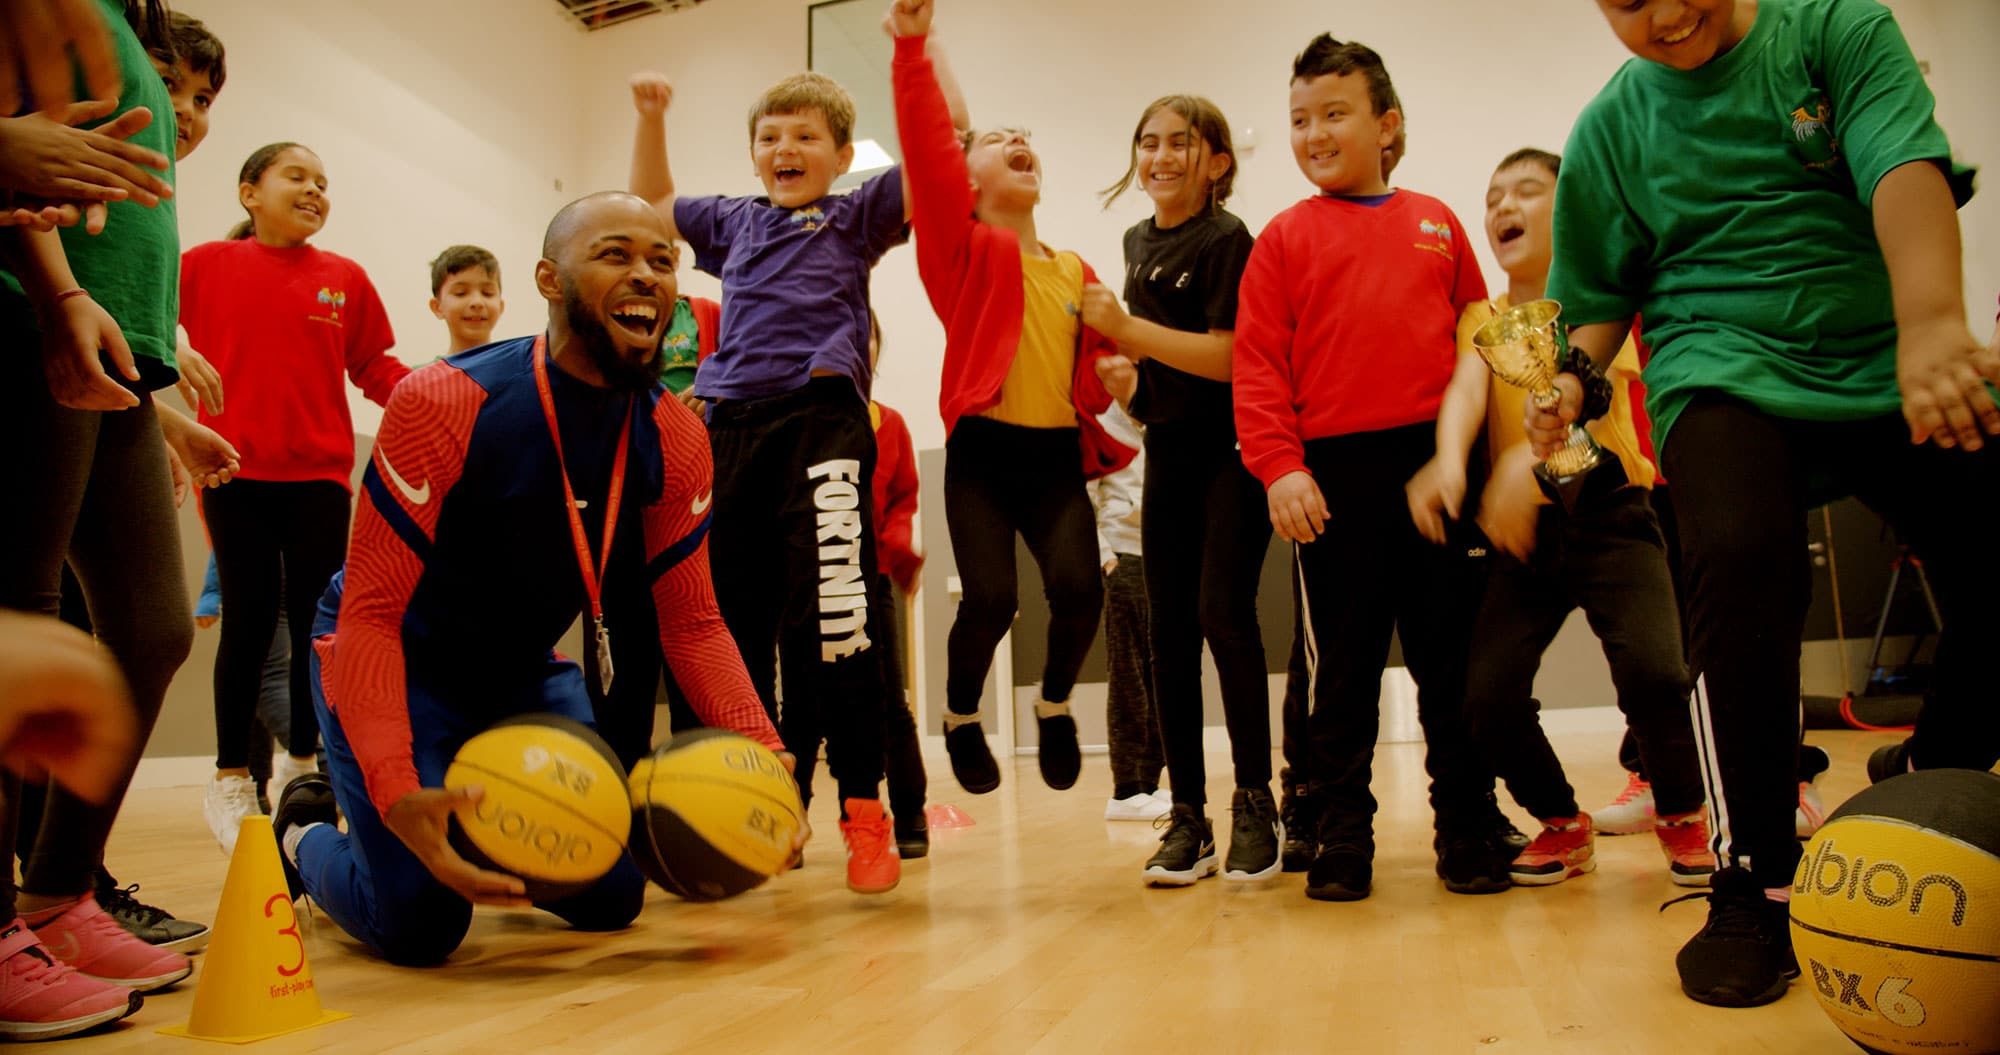 ukactive Kids and Nike launch Active School Hero across England to celebrate unsung school staff inspiring children to be more active